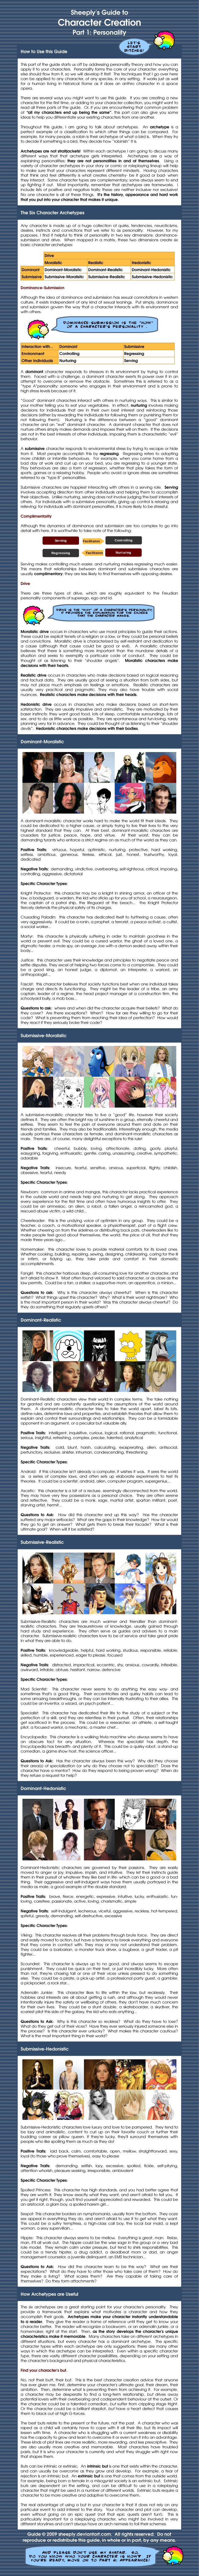 Character Creation Guide Pt 1 by ~Sheeply on deviantART. Sorry about the stupid language at the beginning. Haven't read over it all so hopefully it's not worse. PNRL